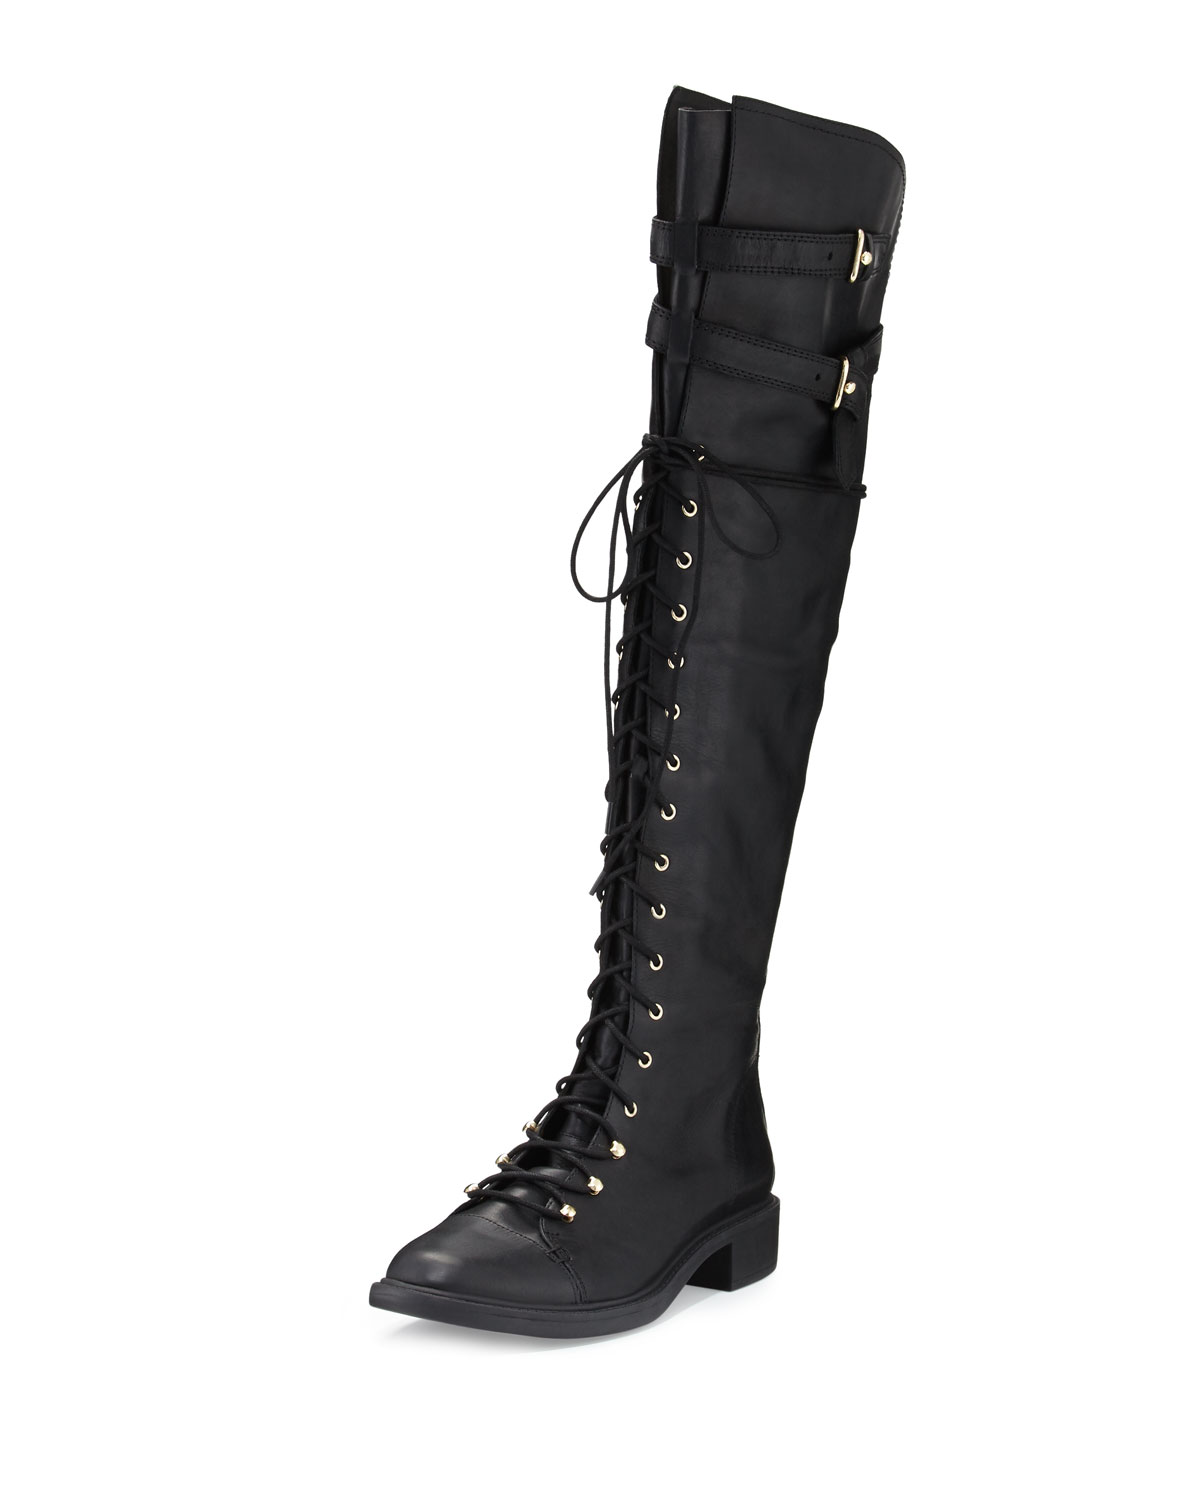 Gryffin Combat Over-the-Knee Boot, Black